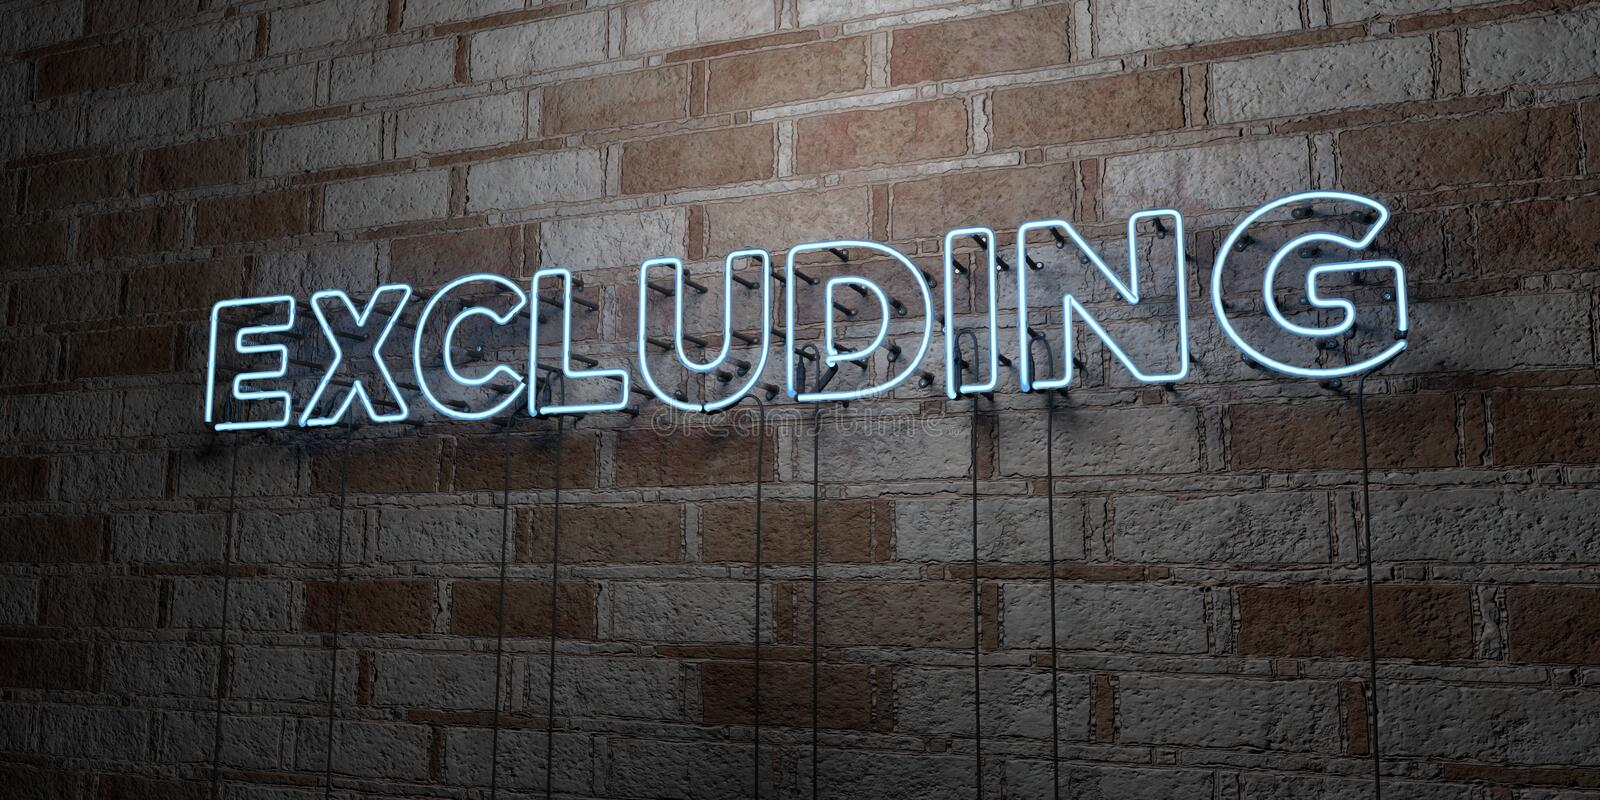 EXCLUDING - Glowing Neon Sign on stonework wall - 3D rendered royalty free stock illustration. Can be used for online banner ads and direct mailers royalty free illustration